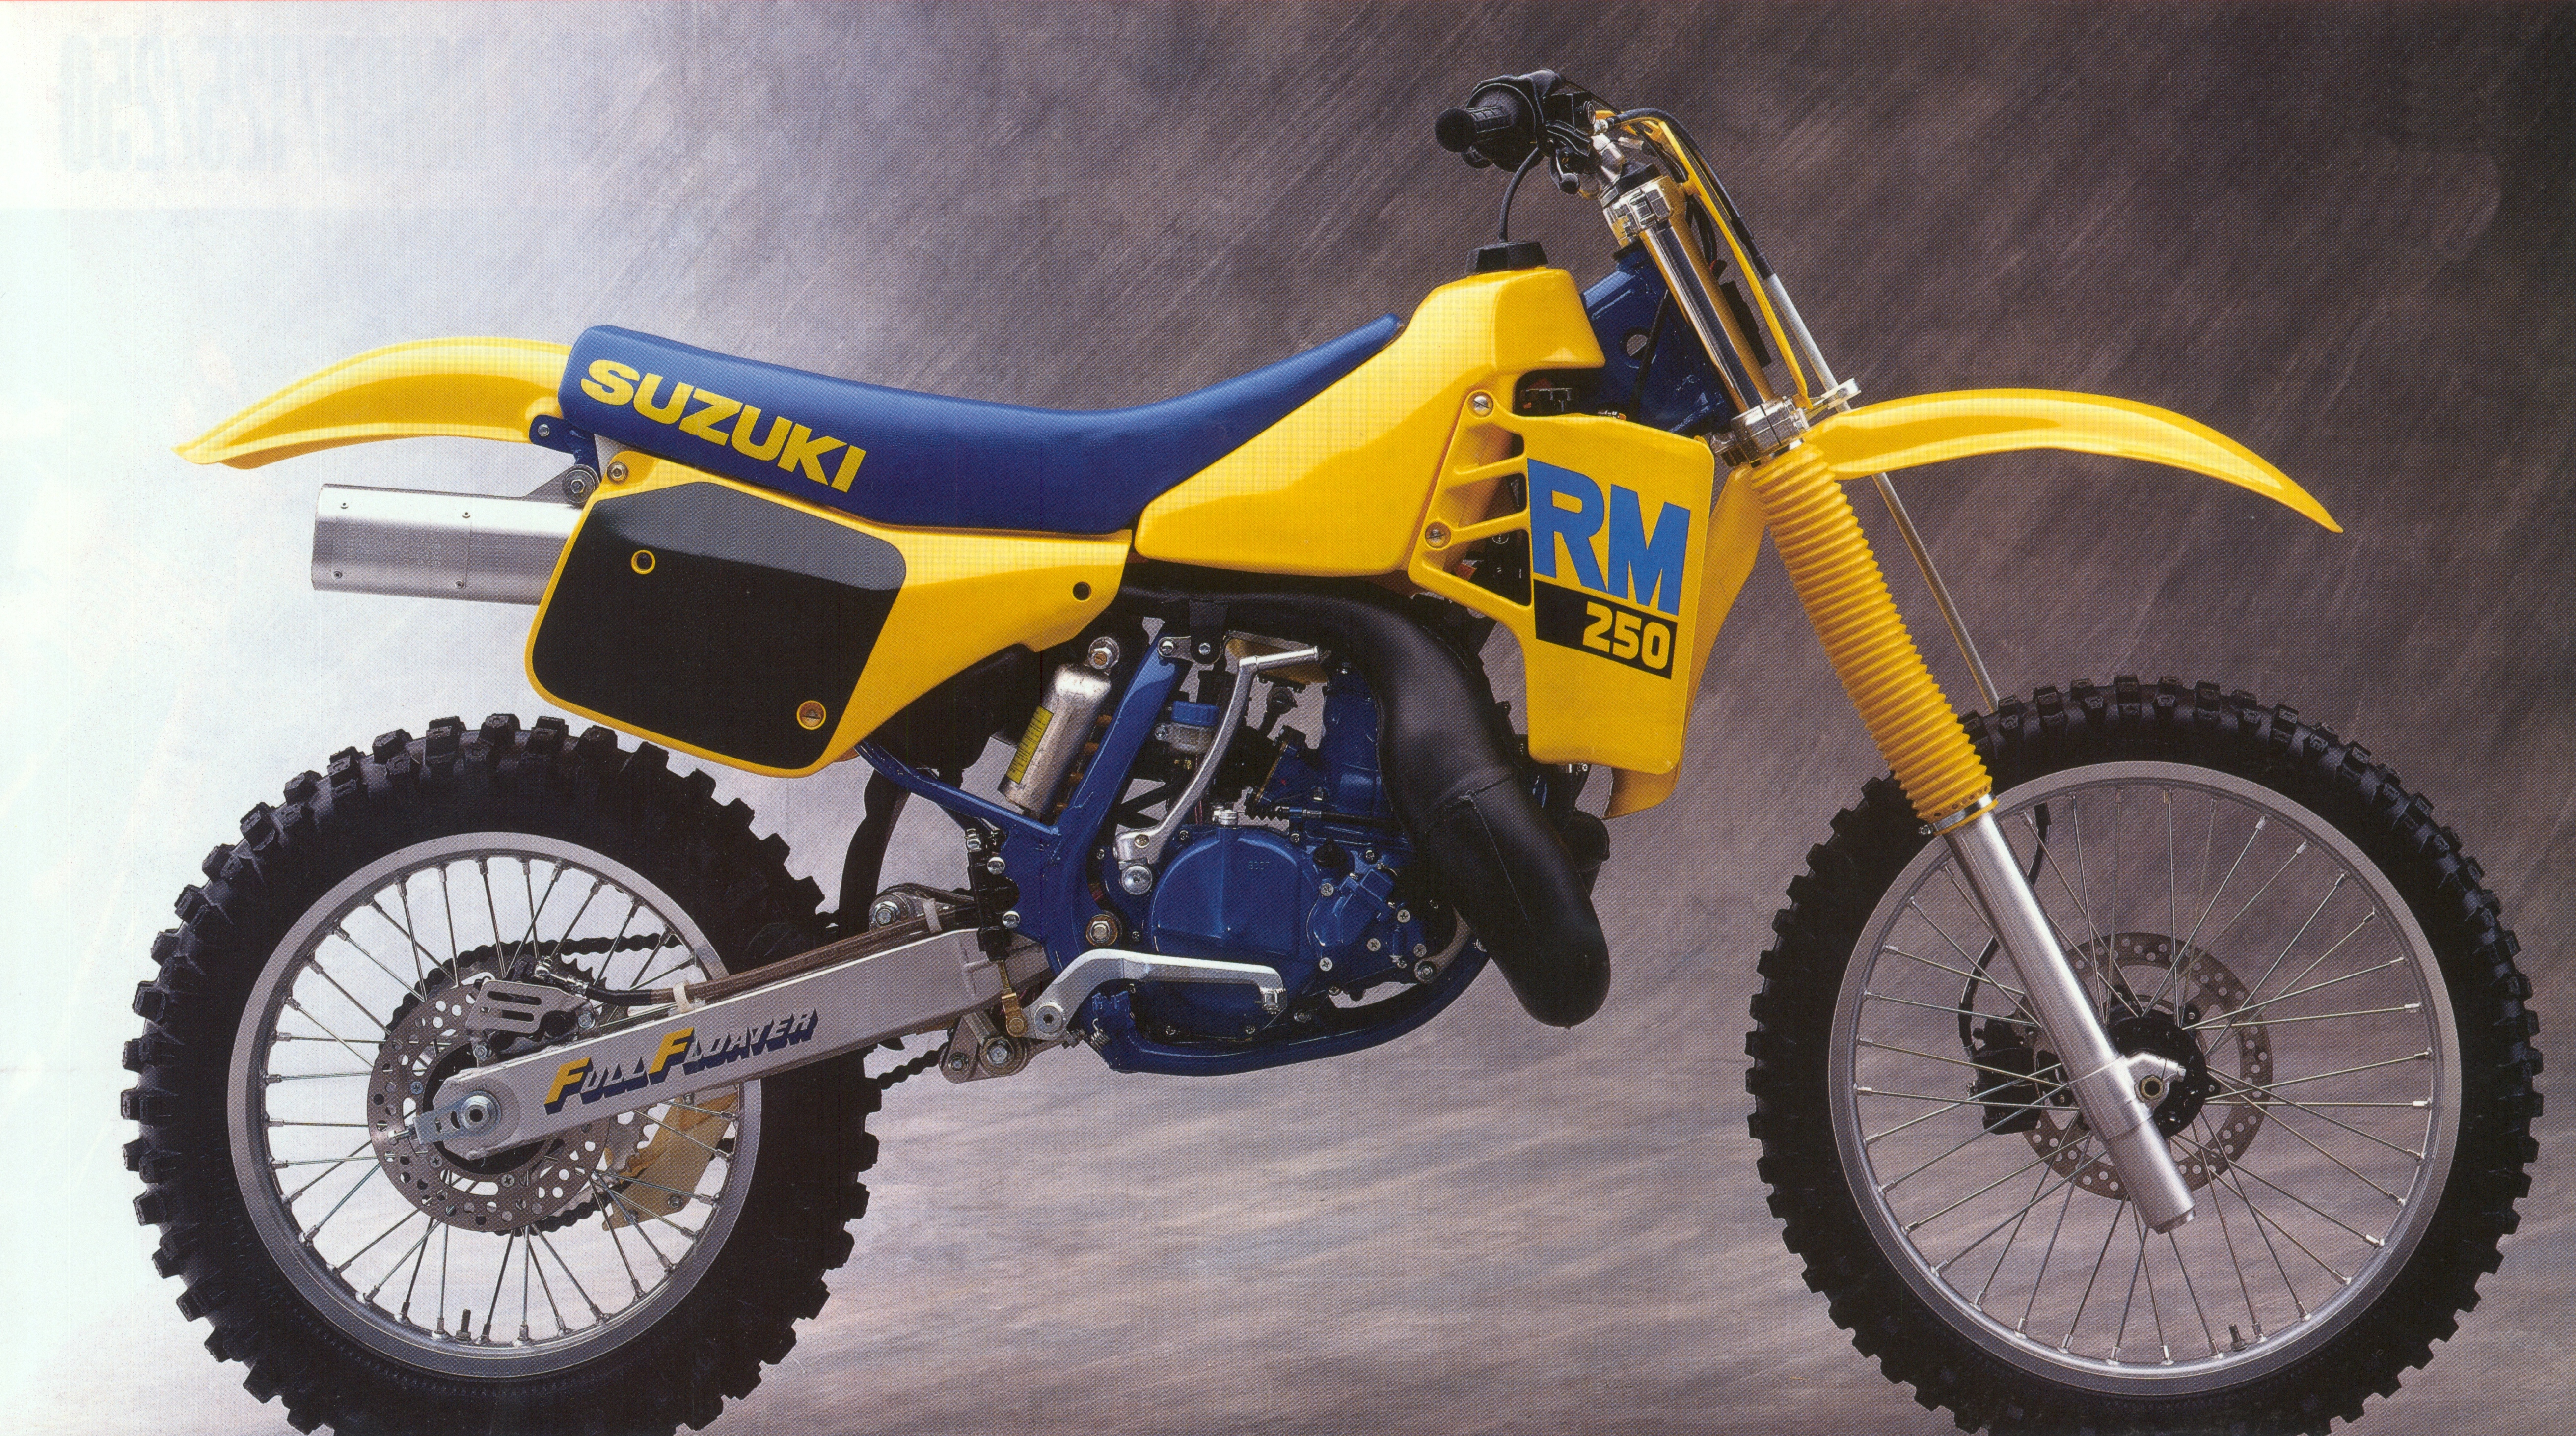 1988 rm 250 restore: finished ,but need help! - Old School Moto - Motocross  Forums / Message Boards - Vital MX